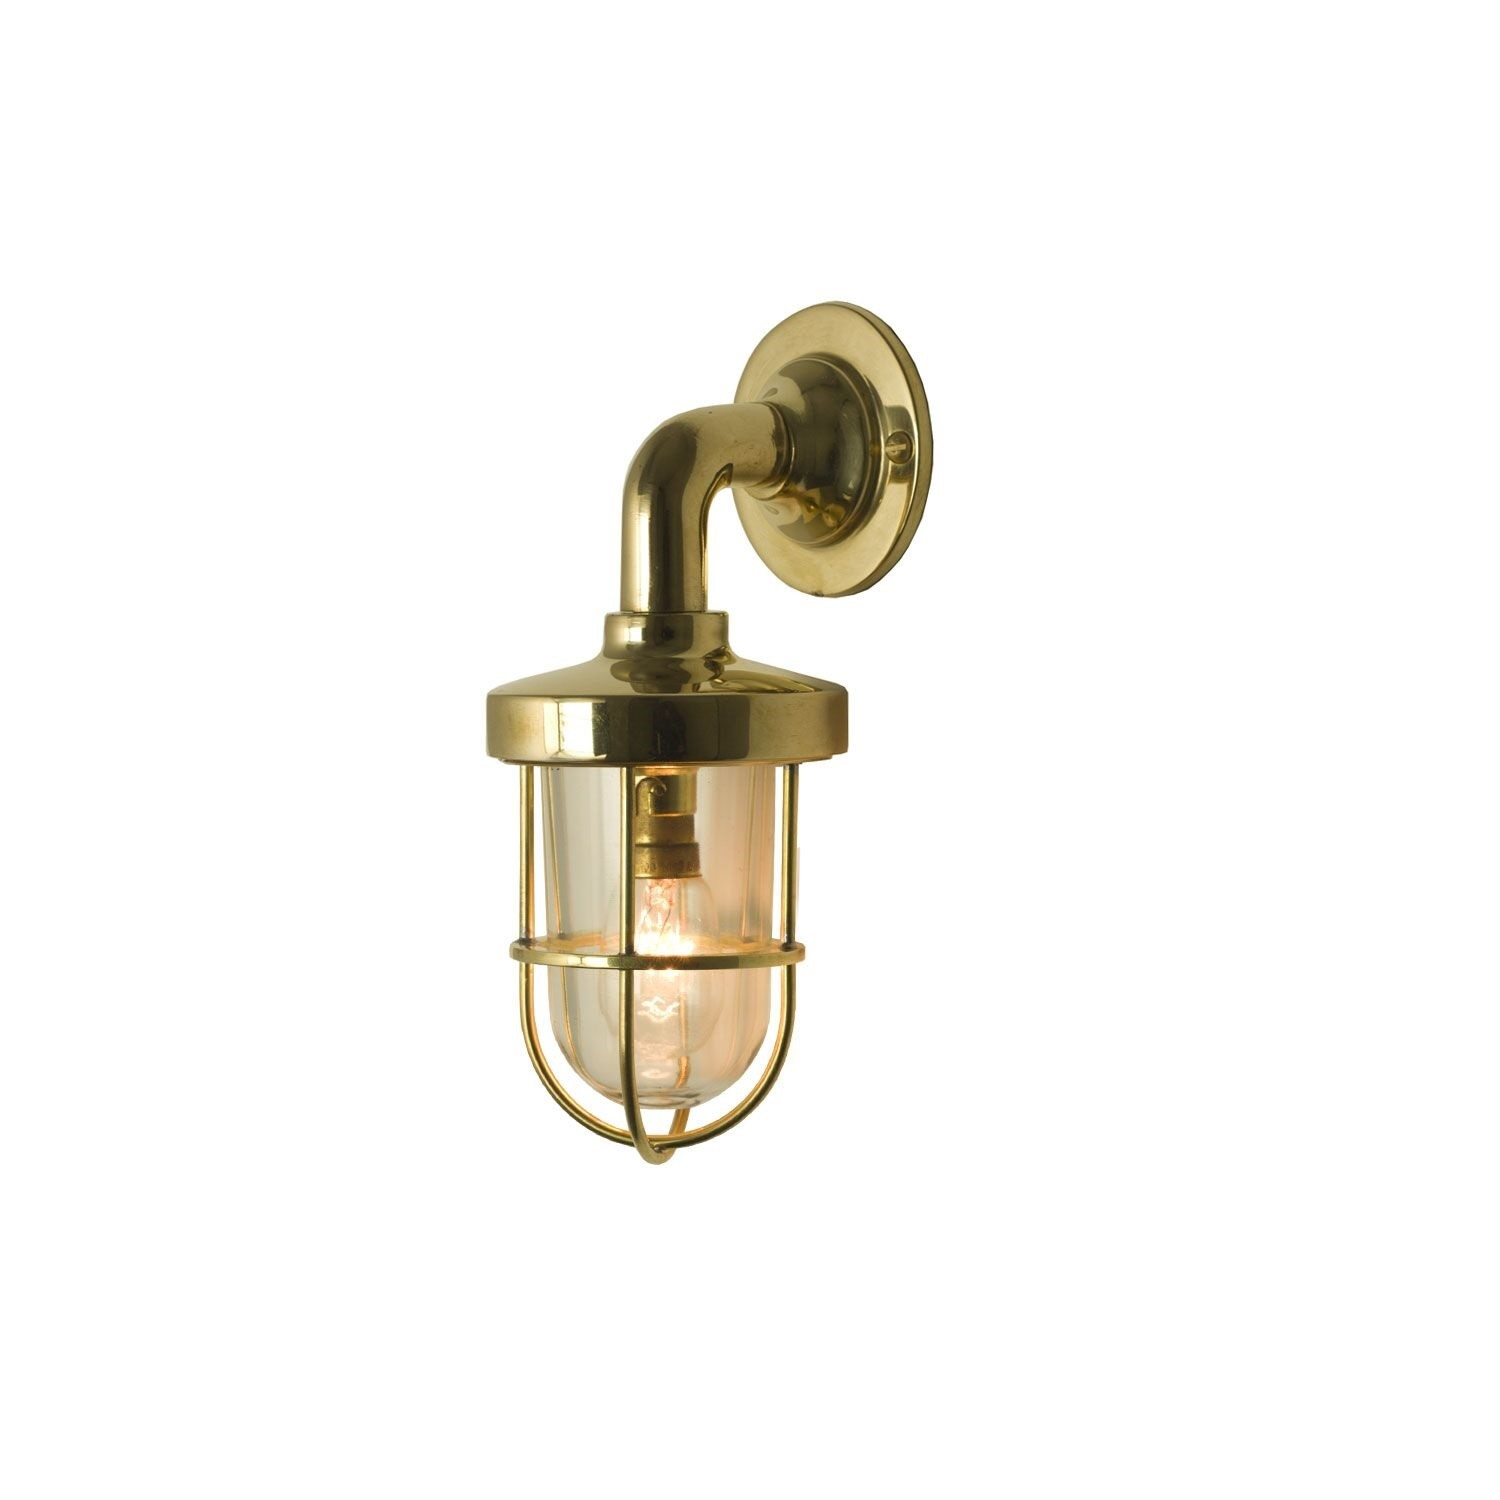 Miniature Weatherproof Ship's Well Glass Light 7207 Polished Brass, Clear glass